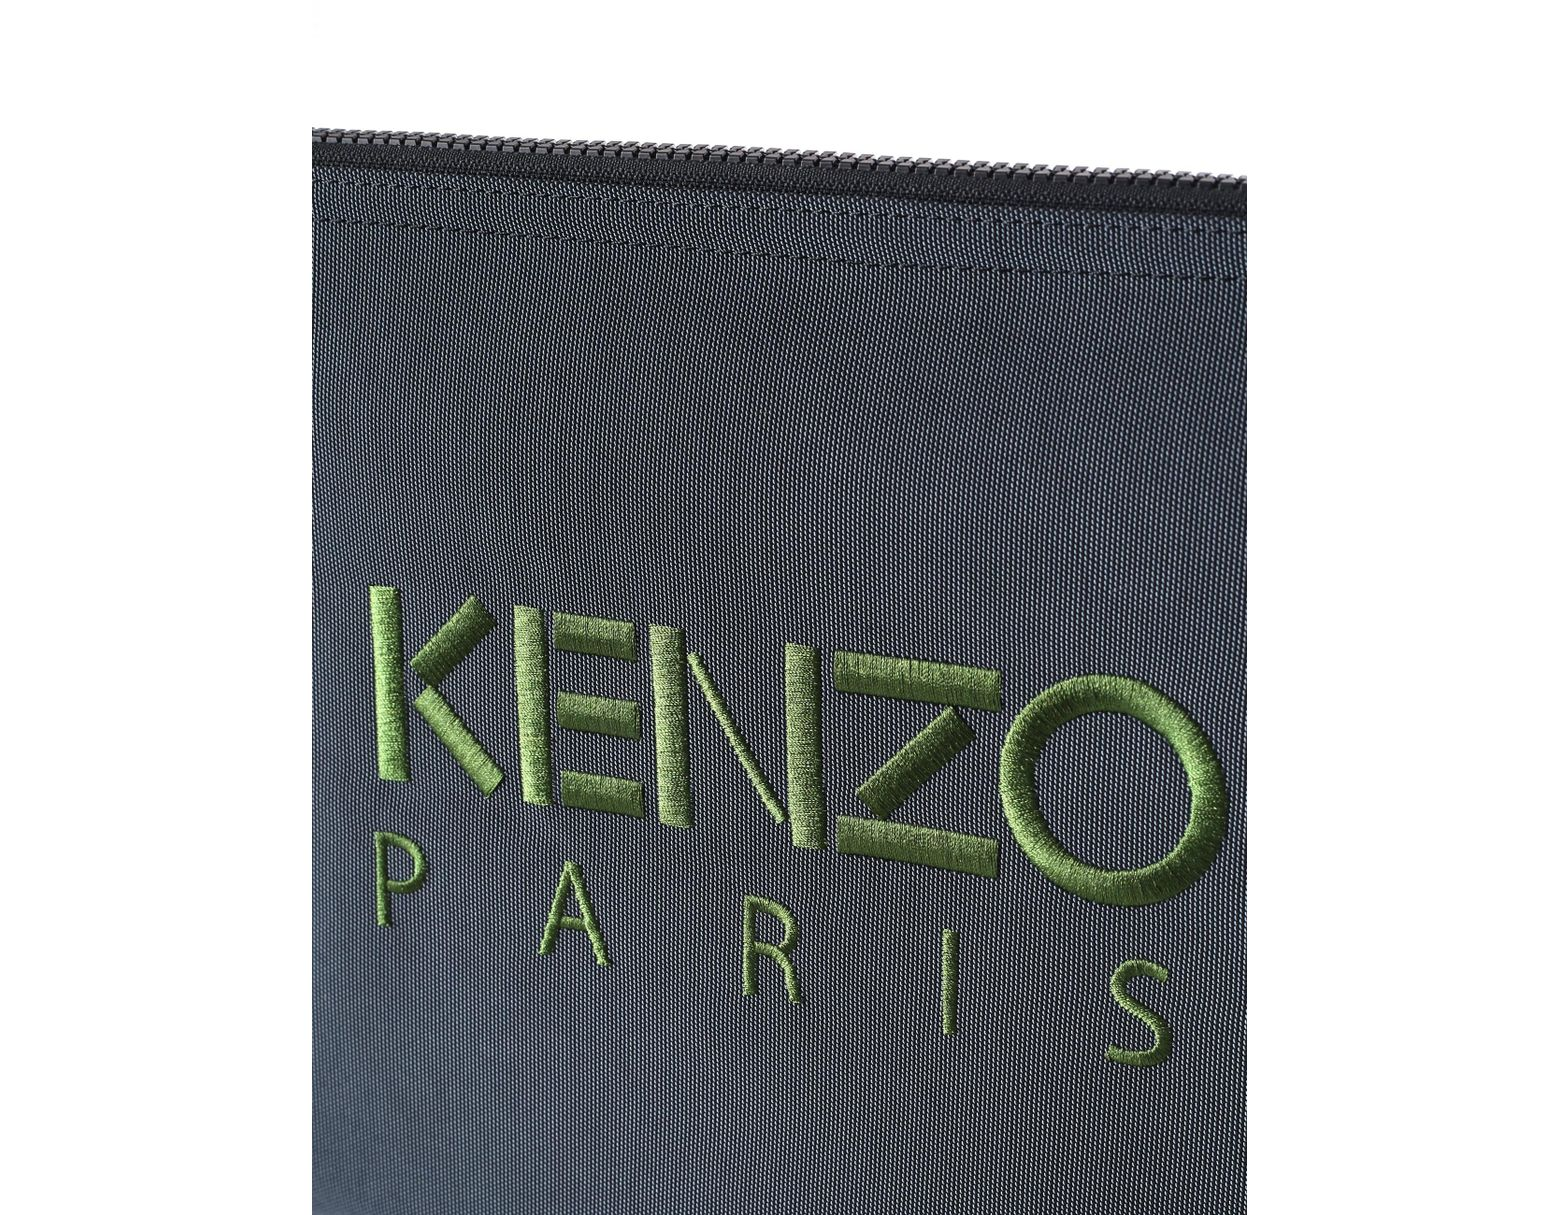 3b688b6403d KENZO A4 Men's Embroidered Tiger Clutch Dark Grey in Gray for Men - Save  48% - Lyst